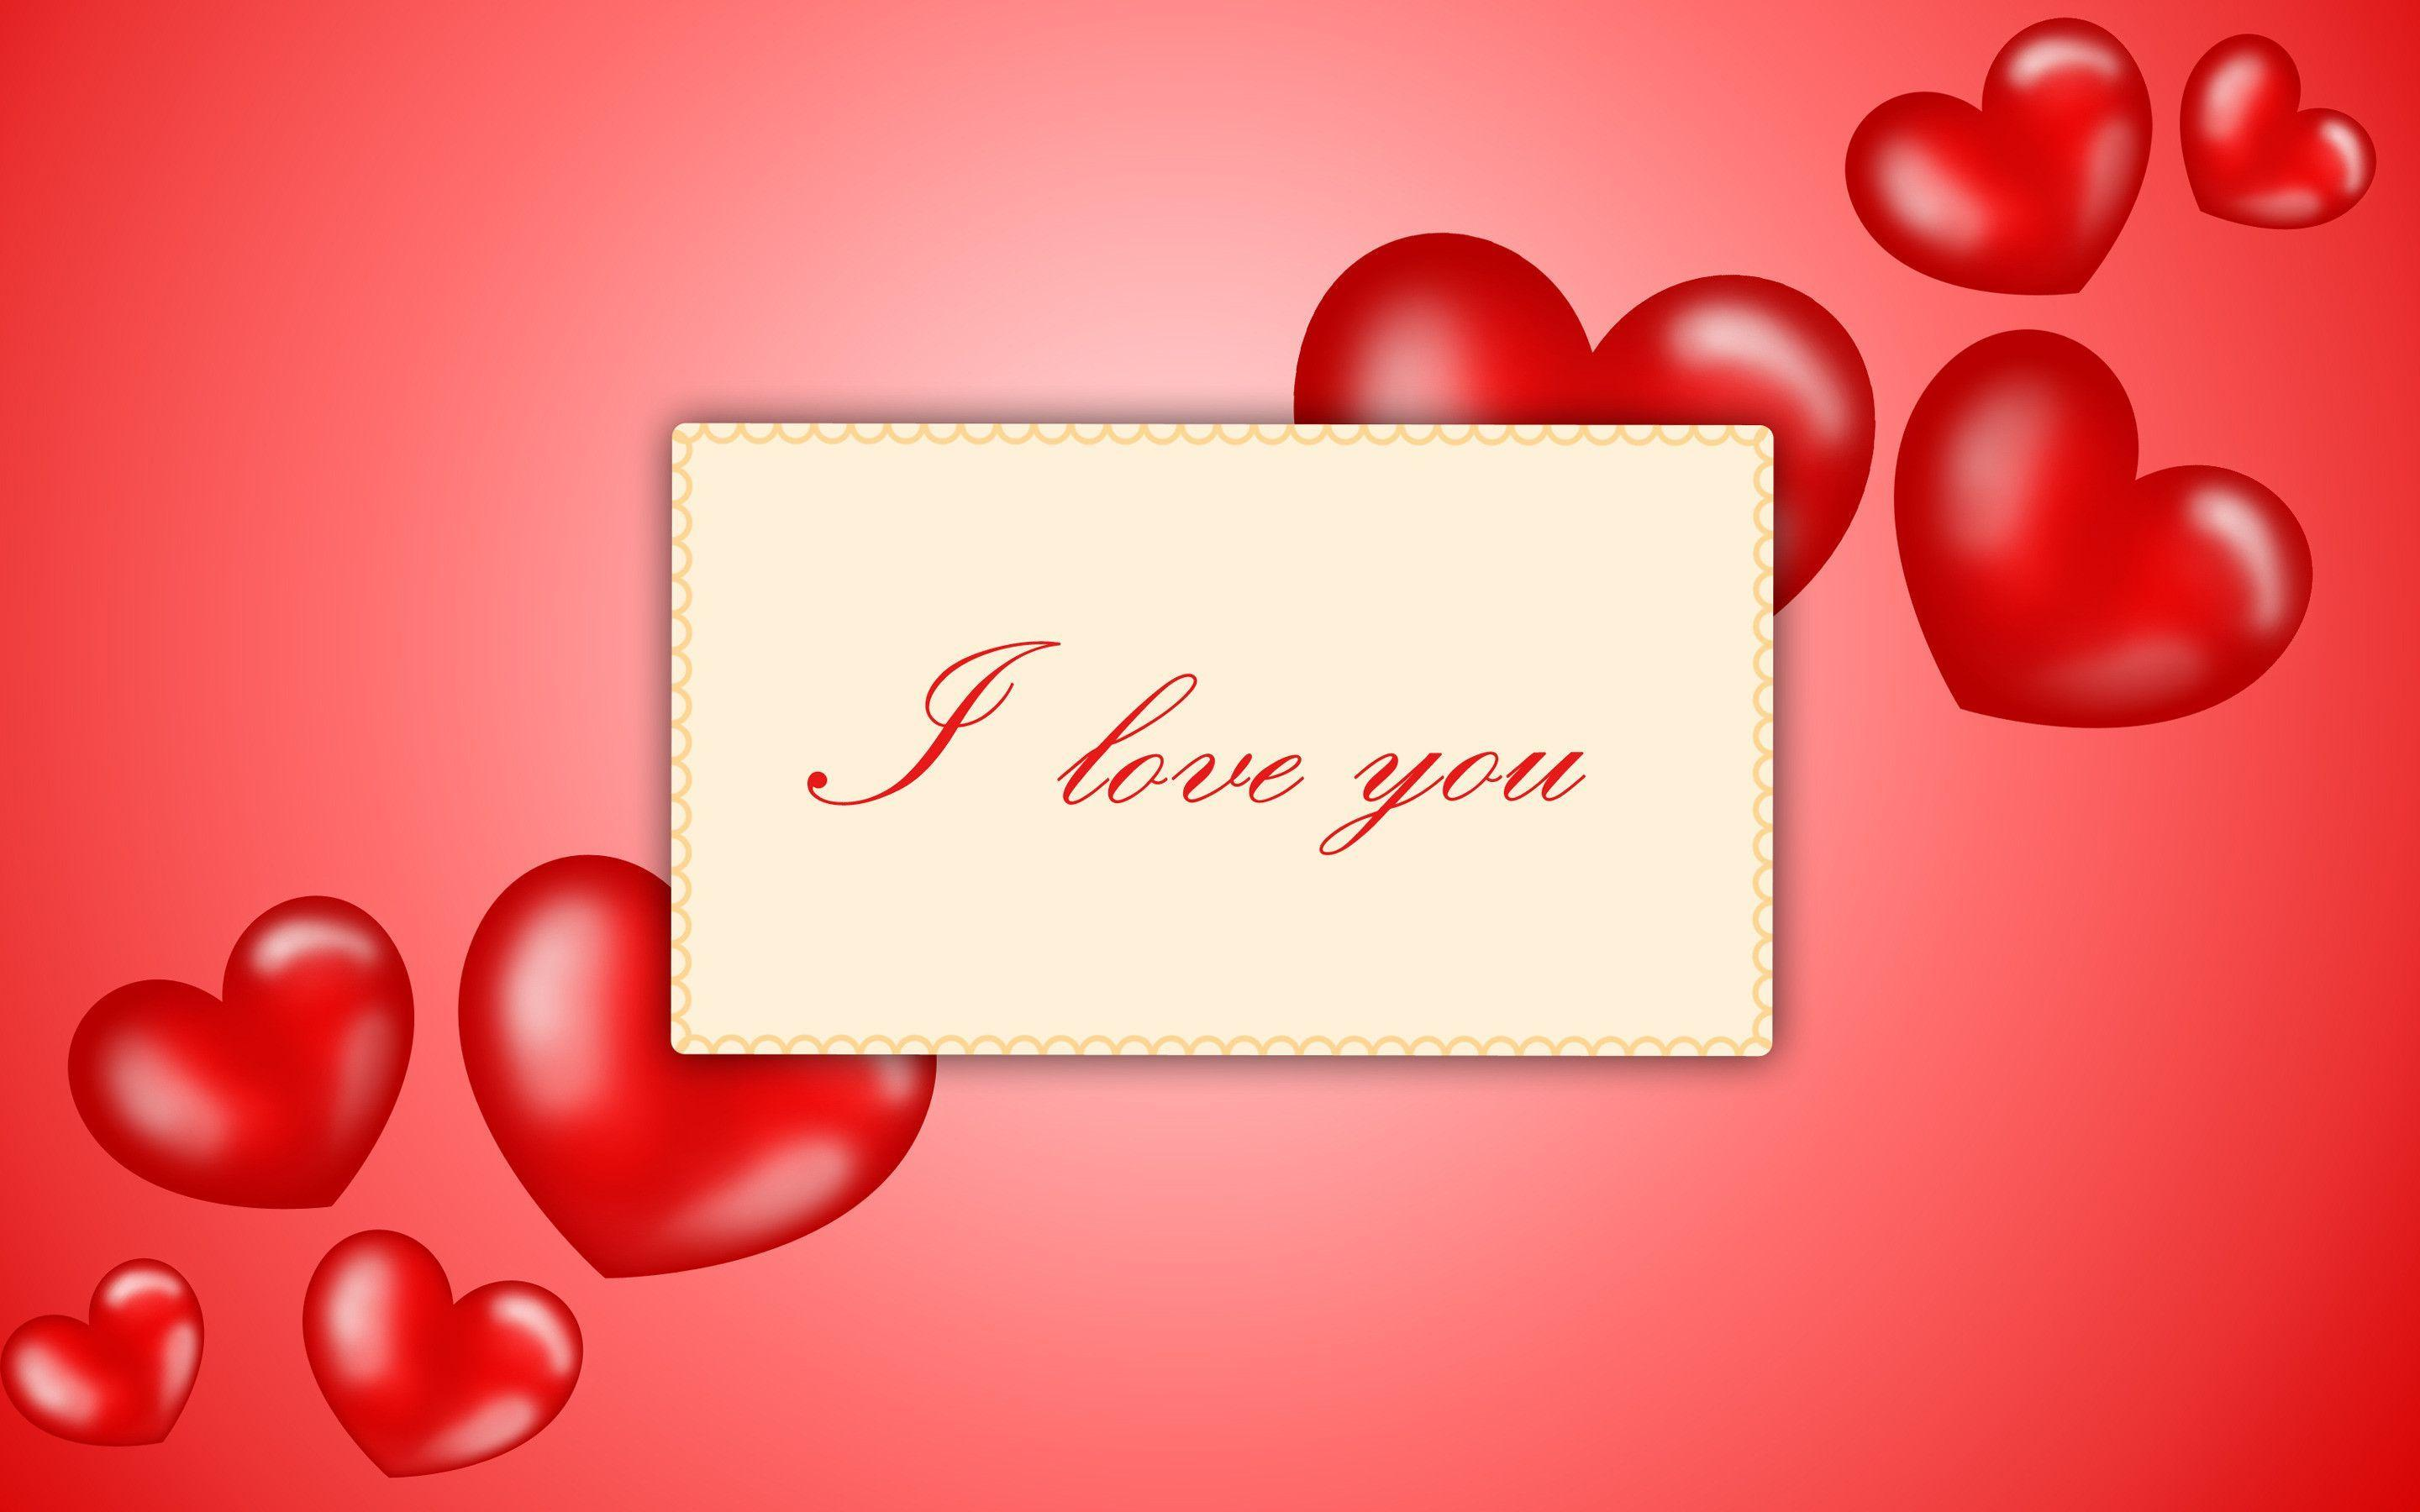 I Love You Wallpaper For Gf : I Love You Wallpapers - Wallpaper cave